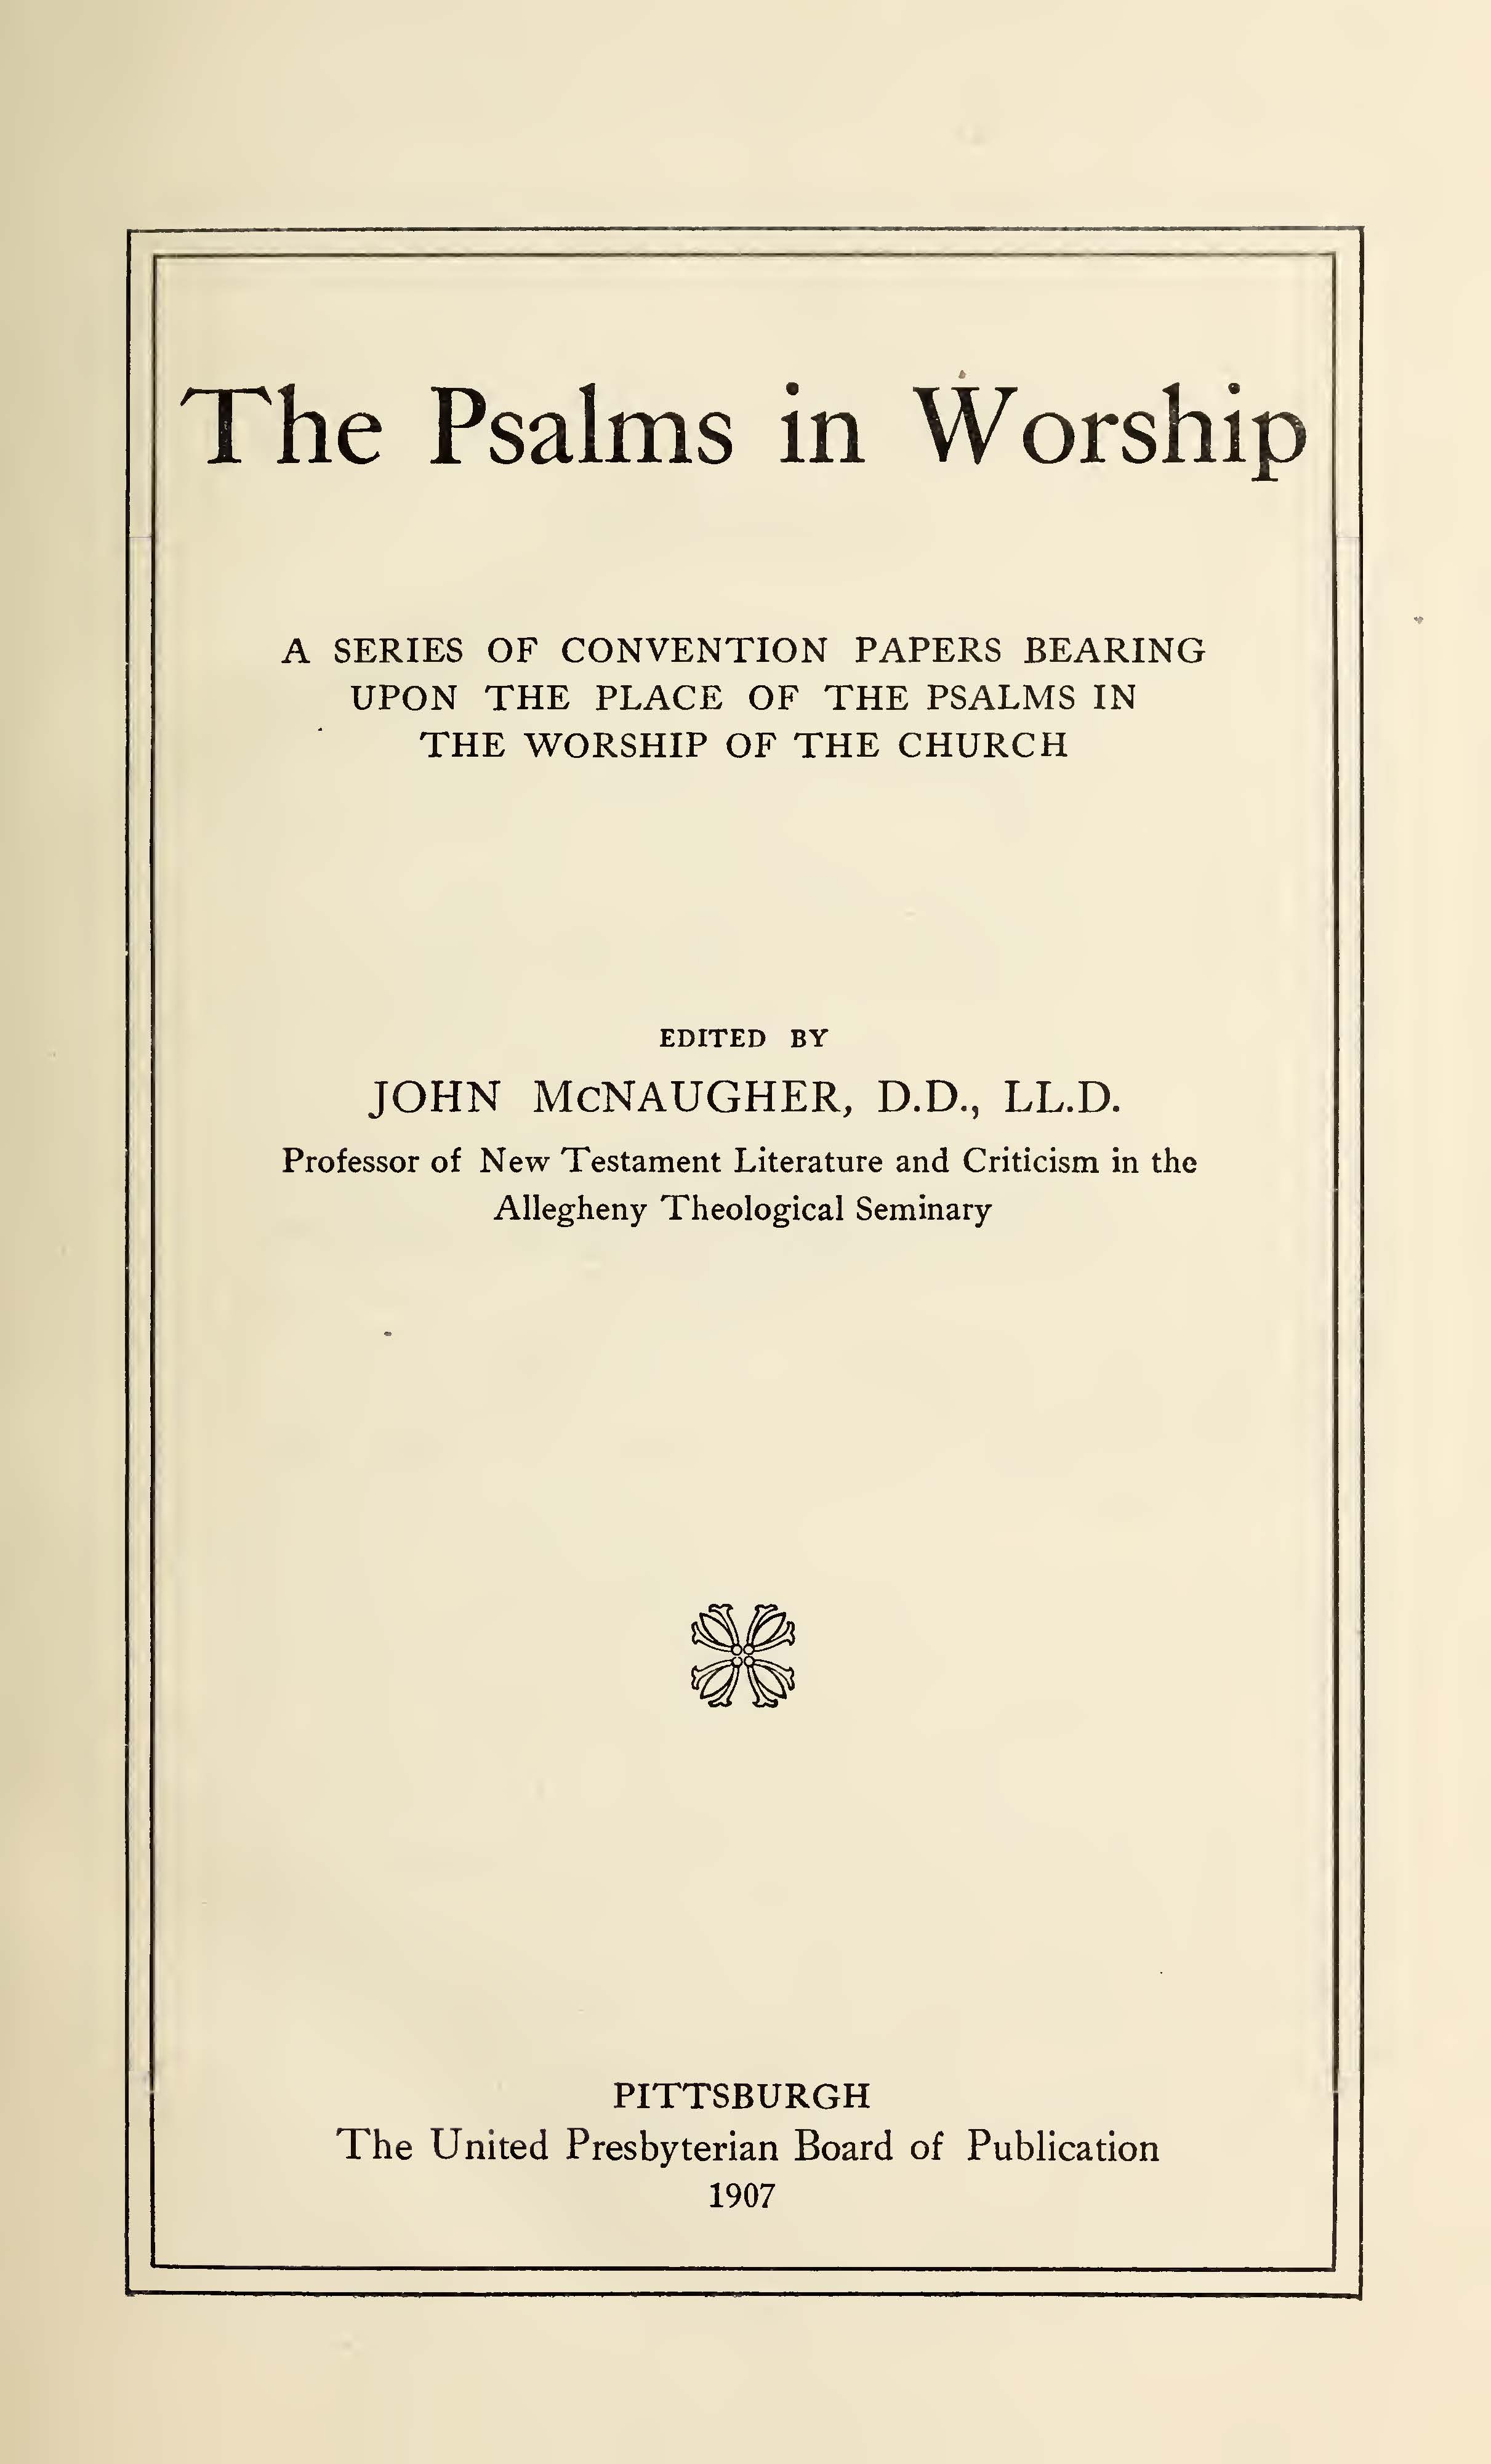 McNaugher, John, The Psalms in Worship Title Page.jpg